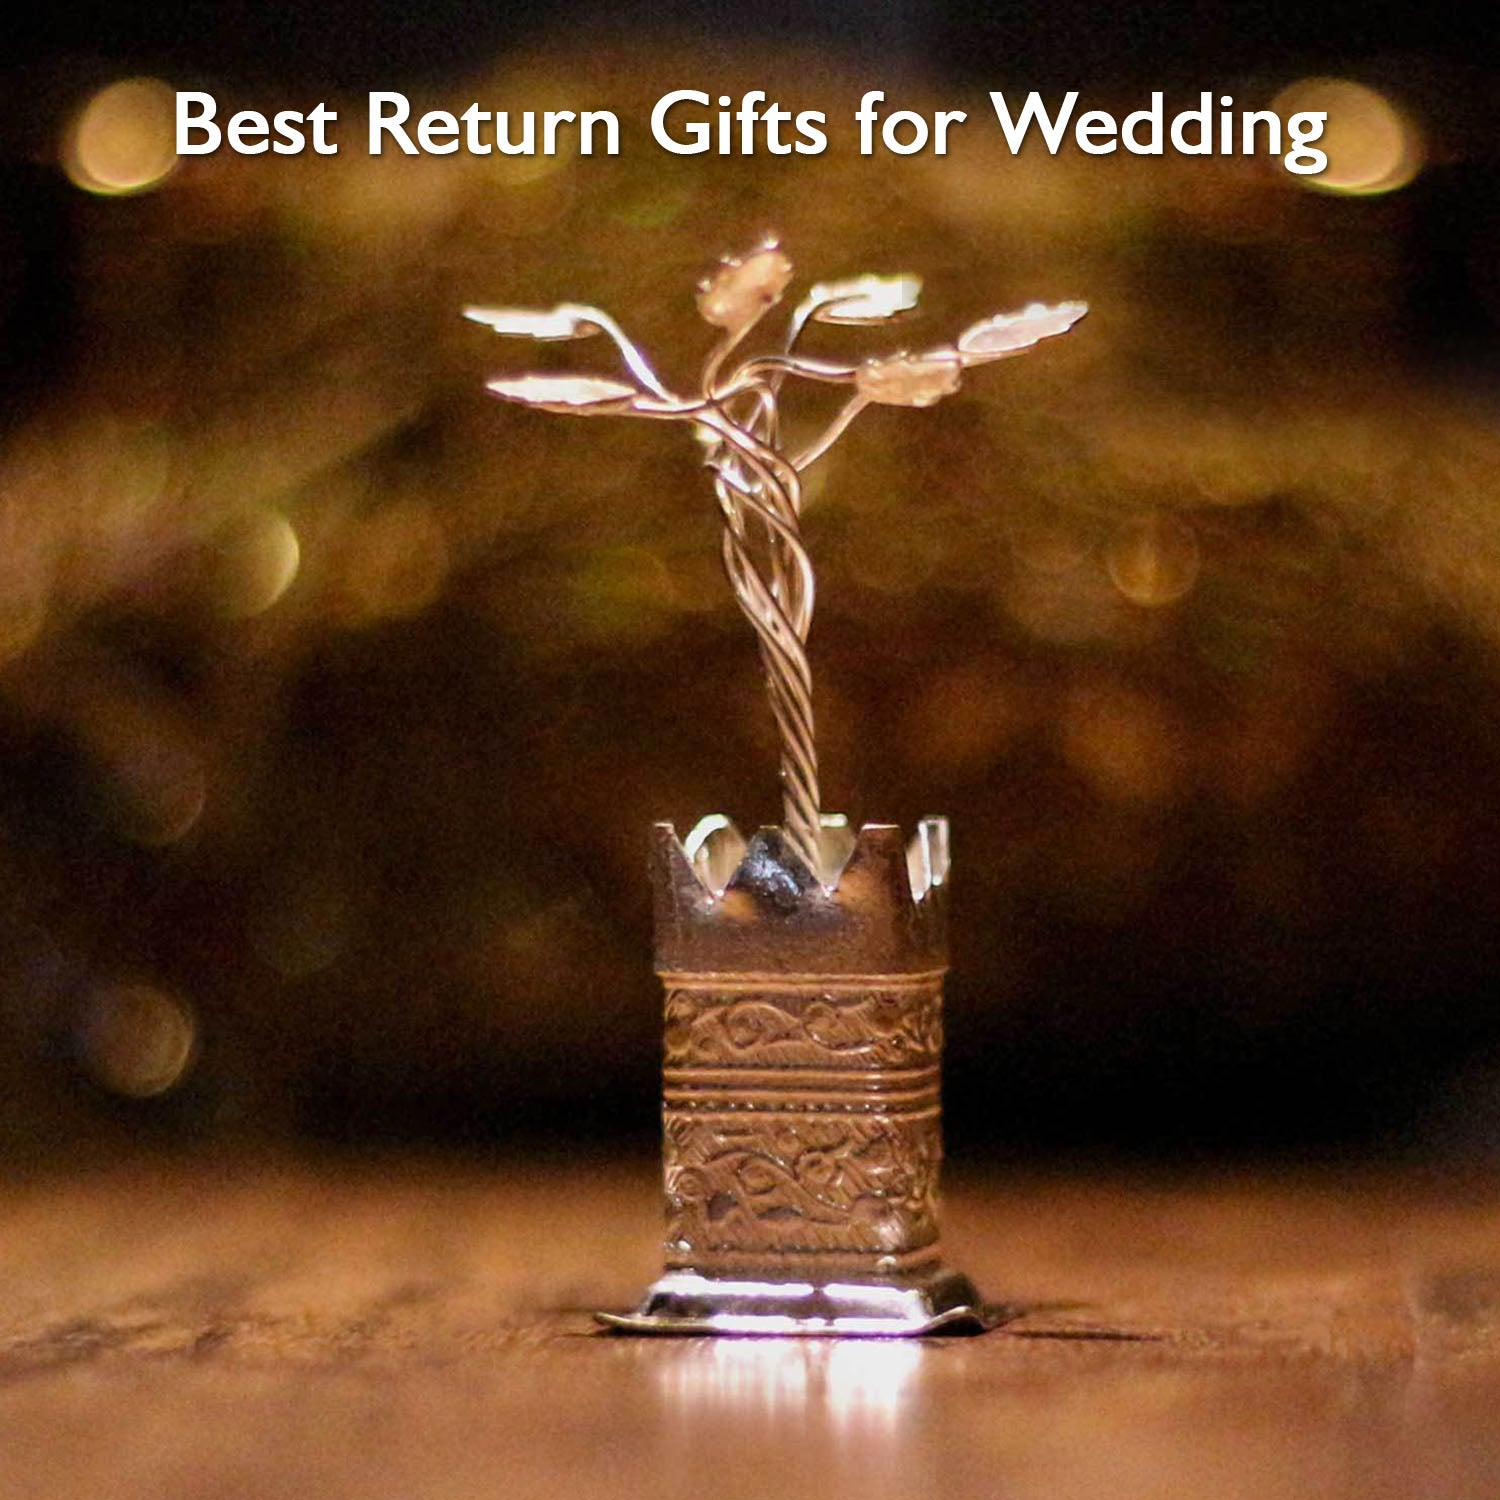 Wedding Return Gift Ideas: Wedding Return Gifts Online